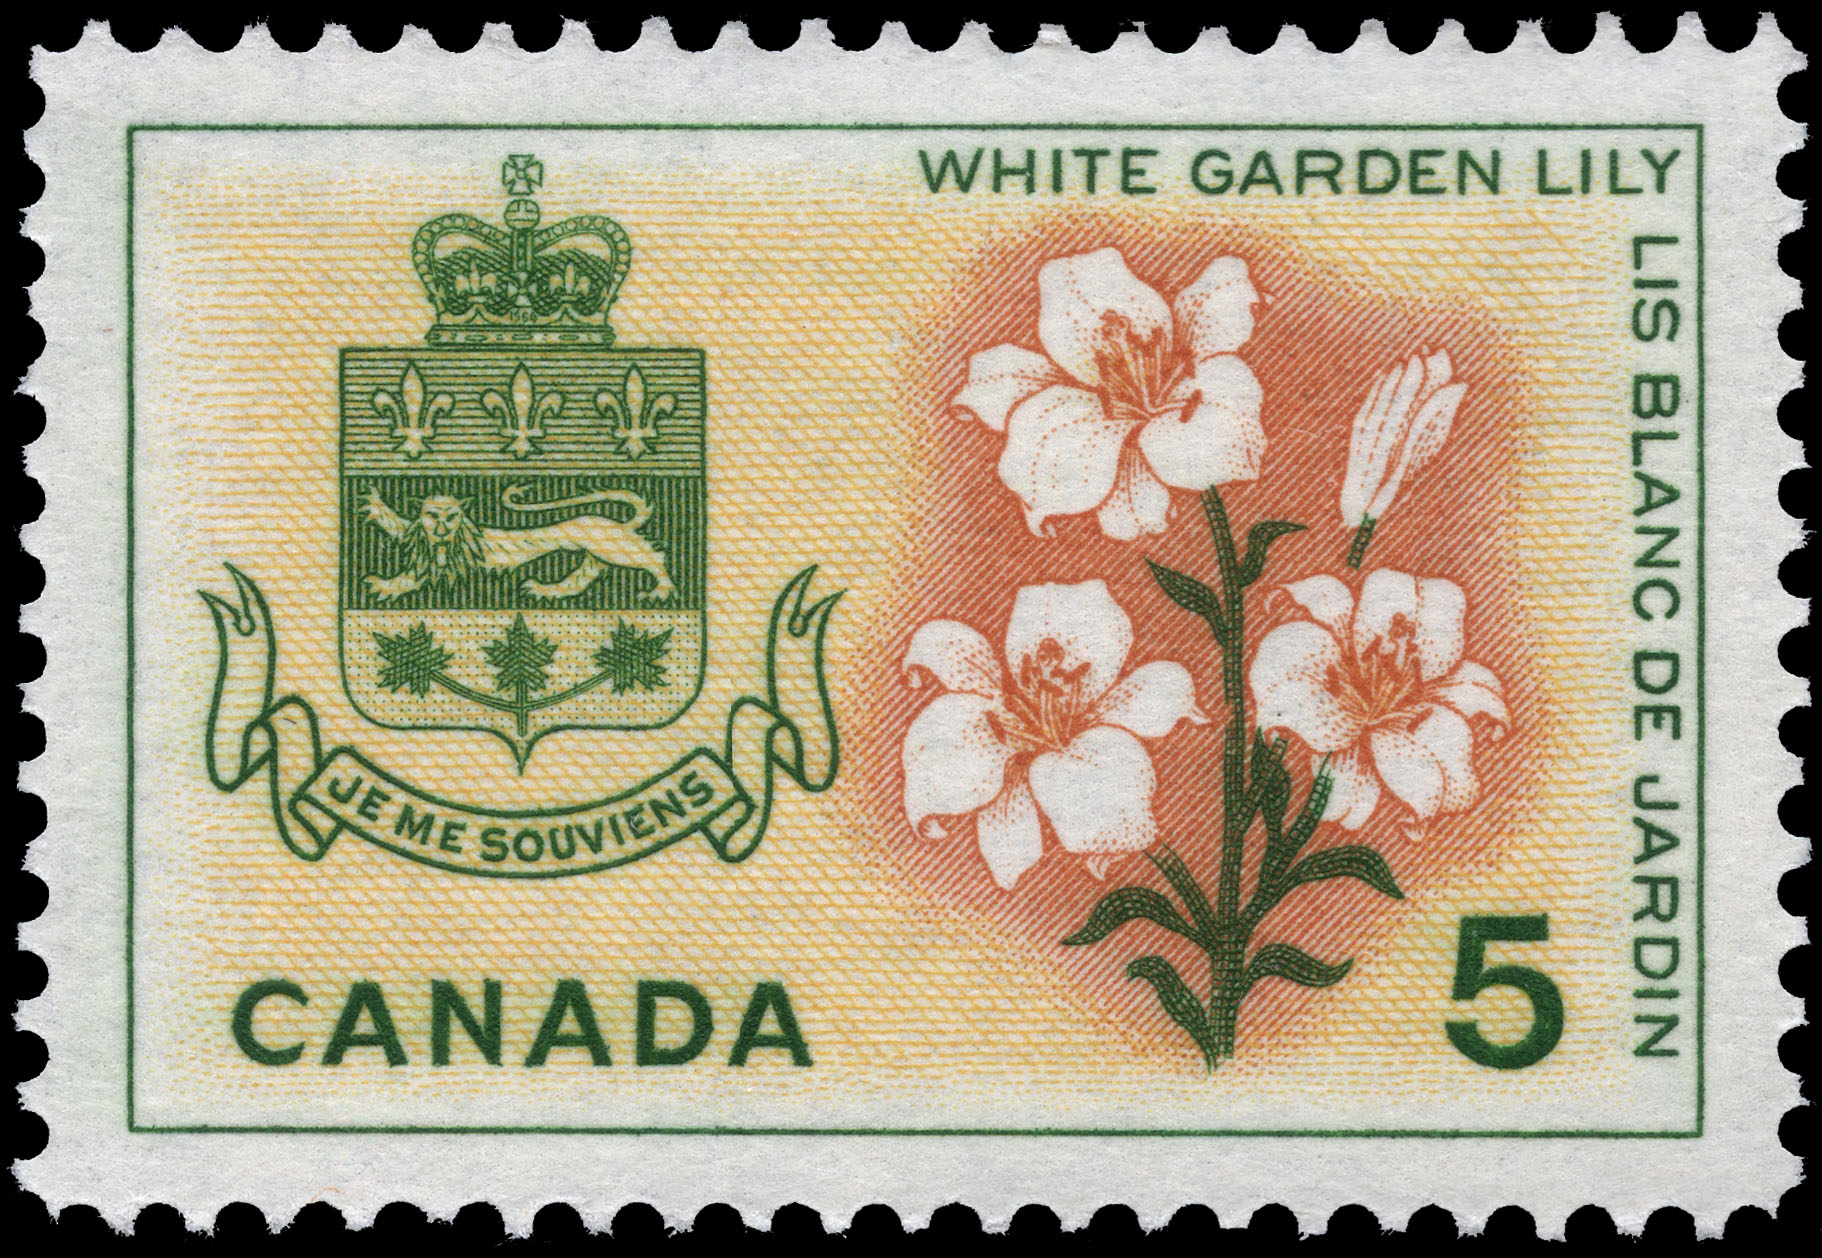 White Garden Lily, Quebec Canada Postage Stamp | Floral Emblems